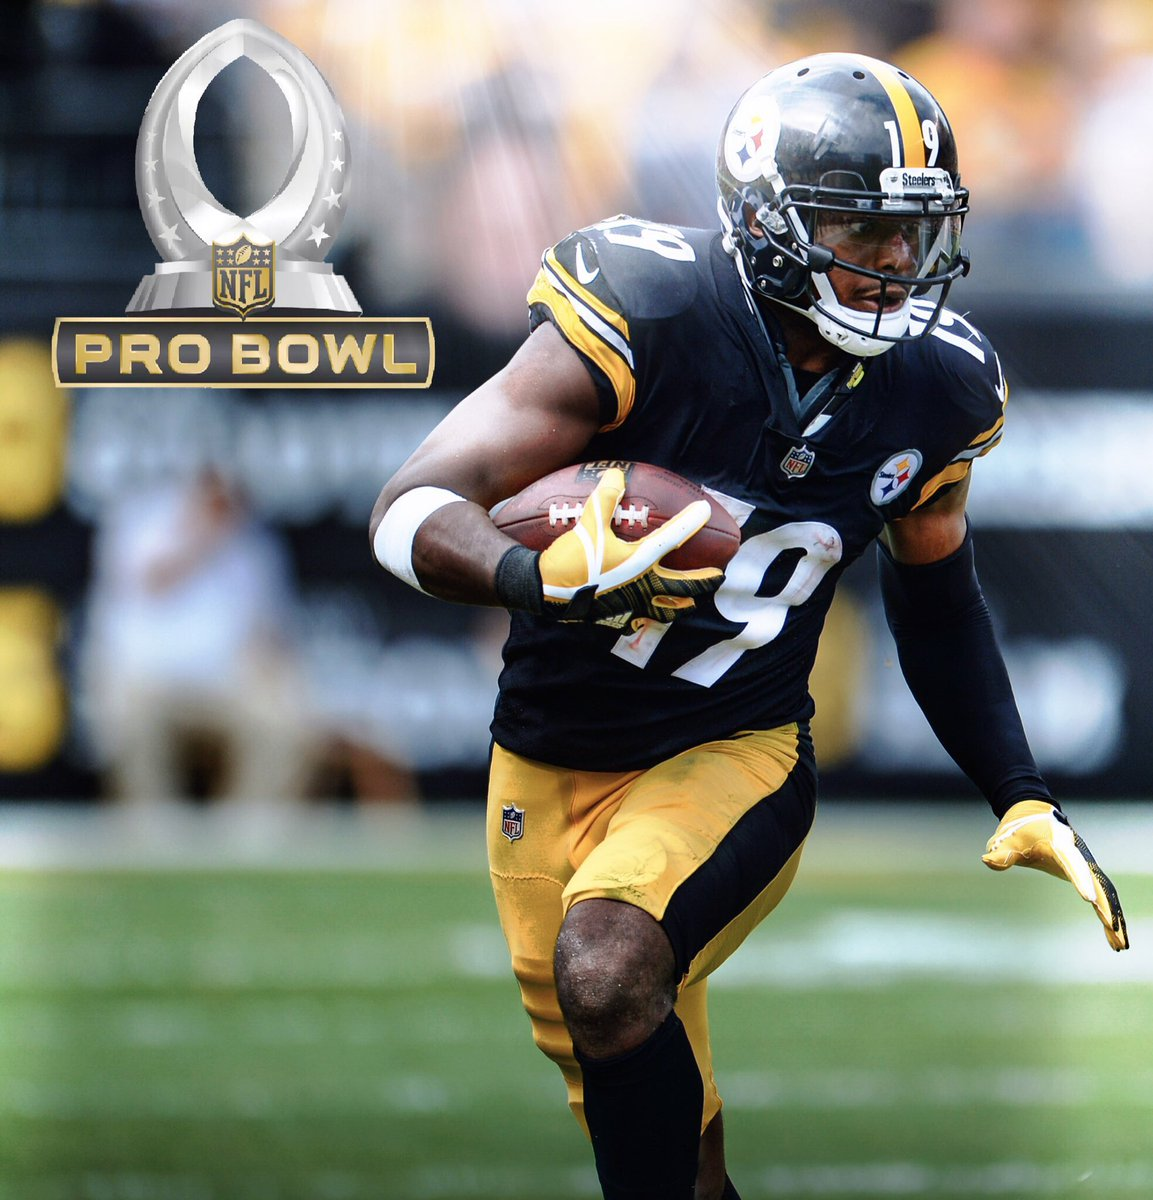 #JuJuSmithSchuster #ProBowlVote @TeamJuJu Every RT counts as a vote!!! Please RT!